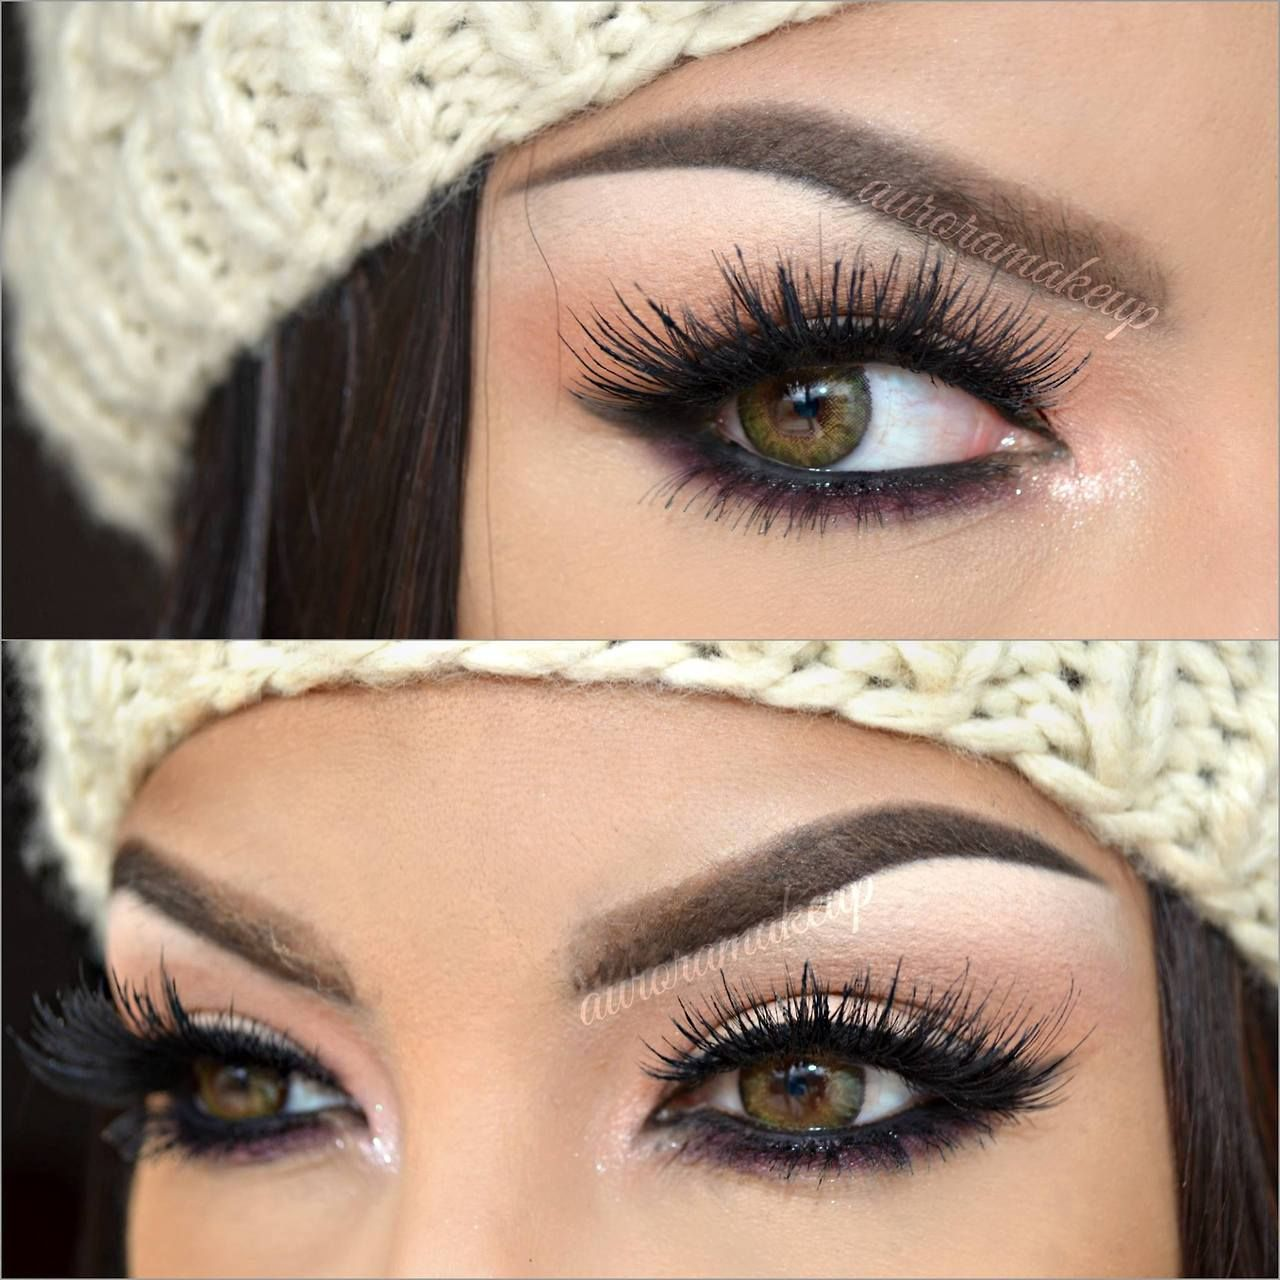 I'm crazy for this Frosty Plum dramatic eyeshadow look for